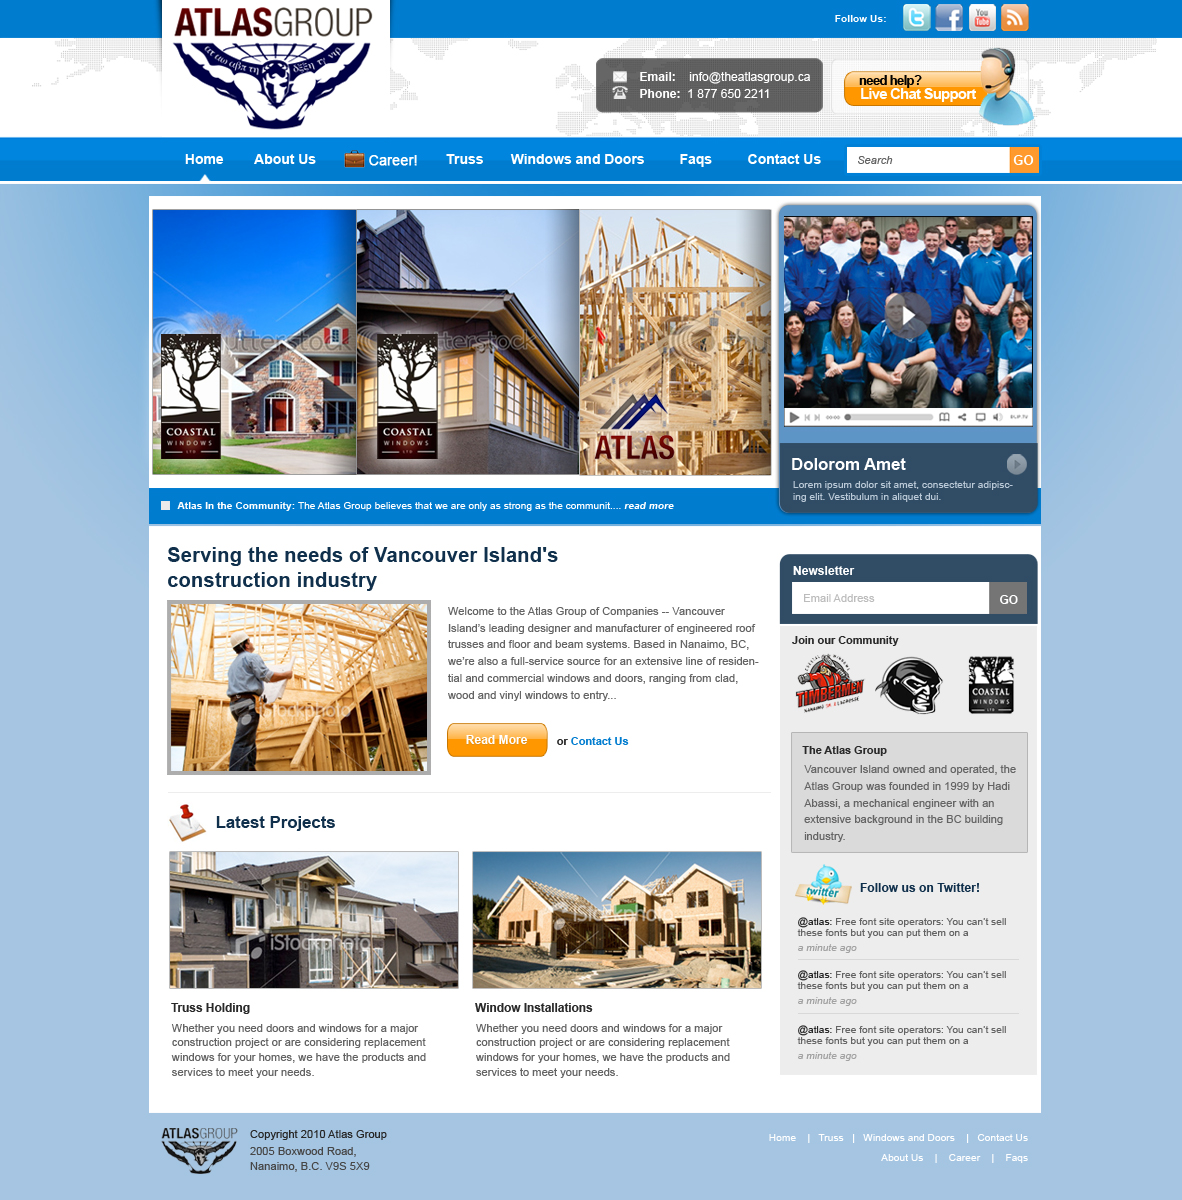 Web Page Design by rockpinoy - Entry No. 105 in the Web Page Design Contest The Atlas Group Website.